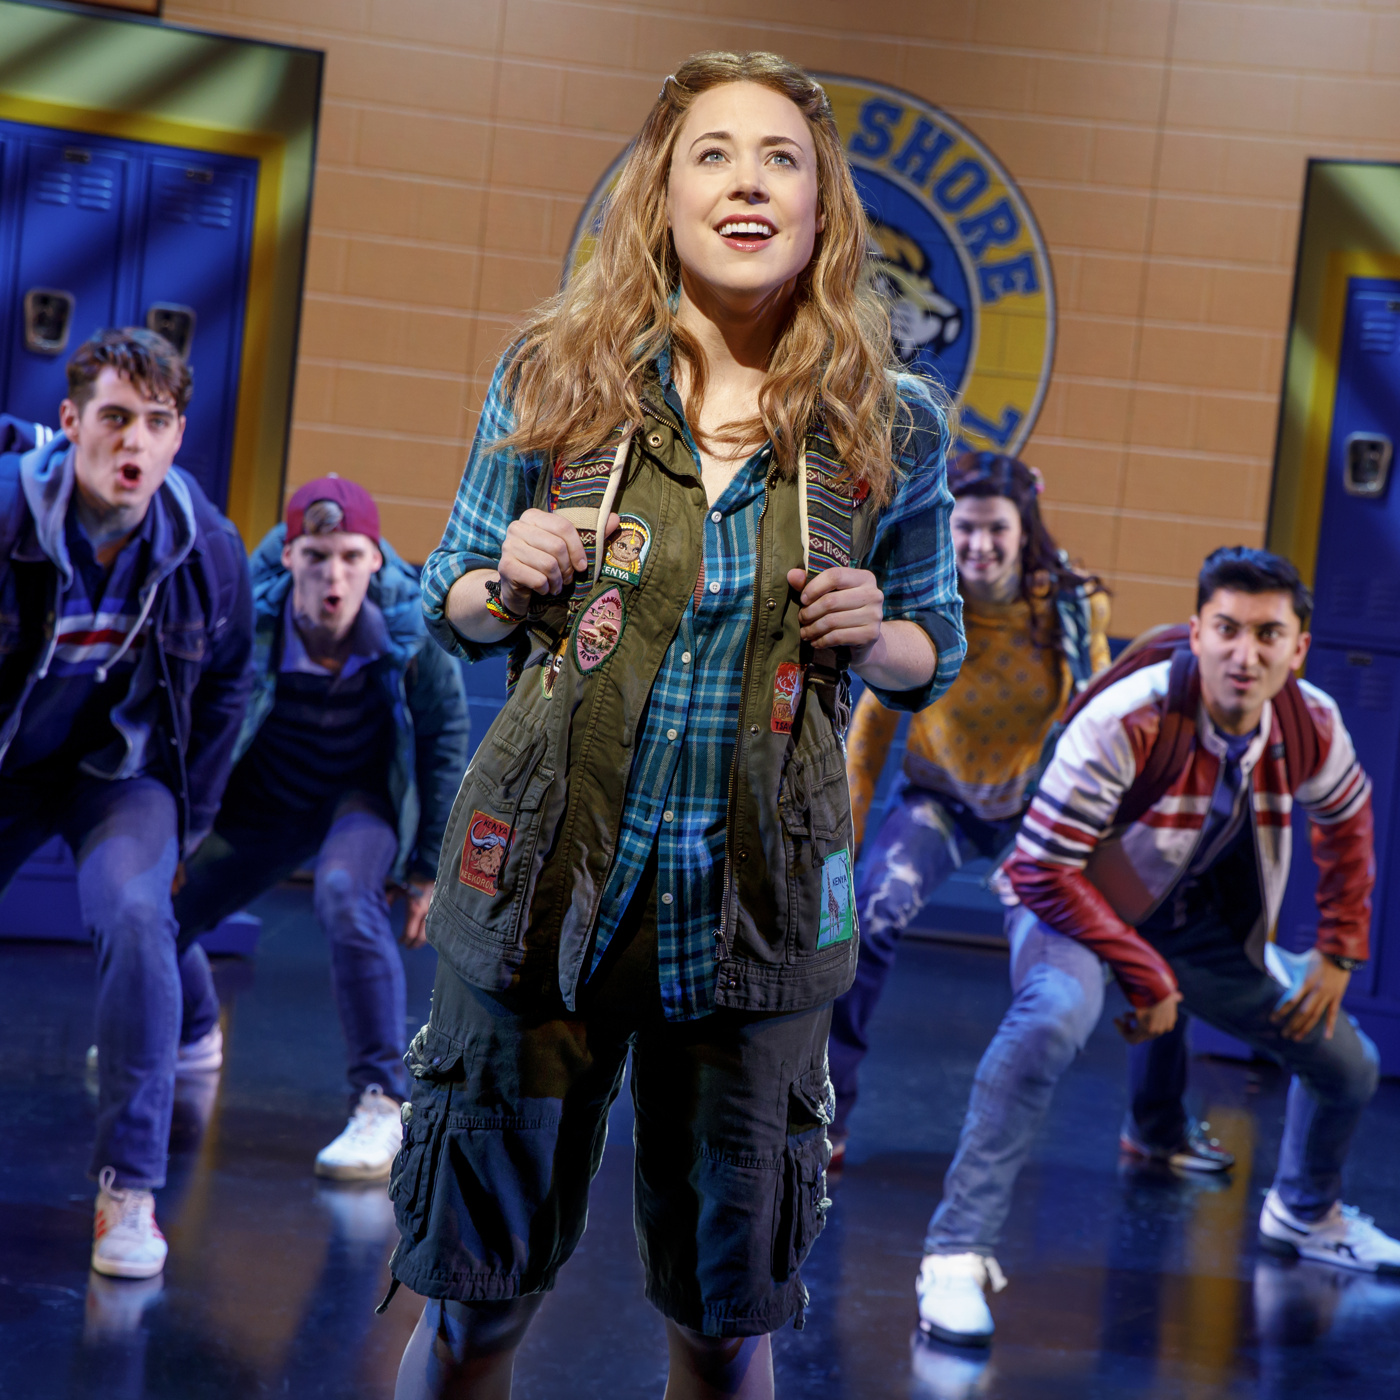 Mean Girls' Erika Henningsen Digs into Donuts, Drops a Beat